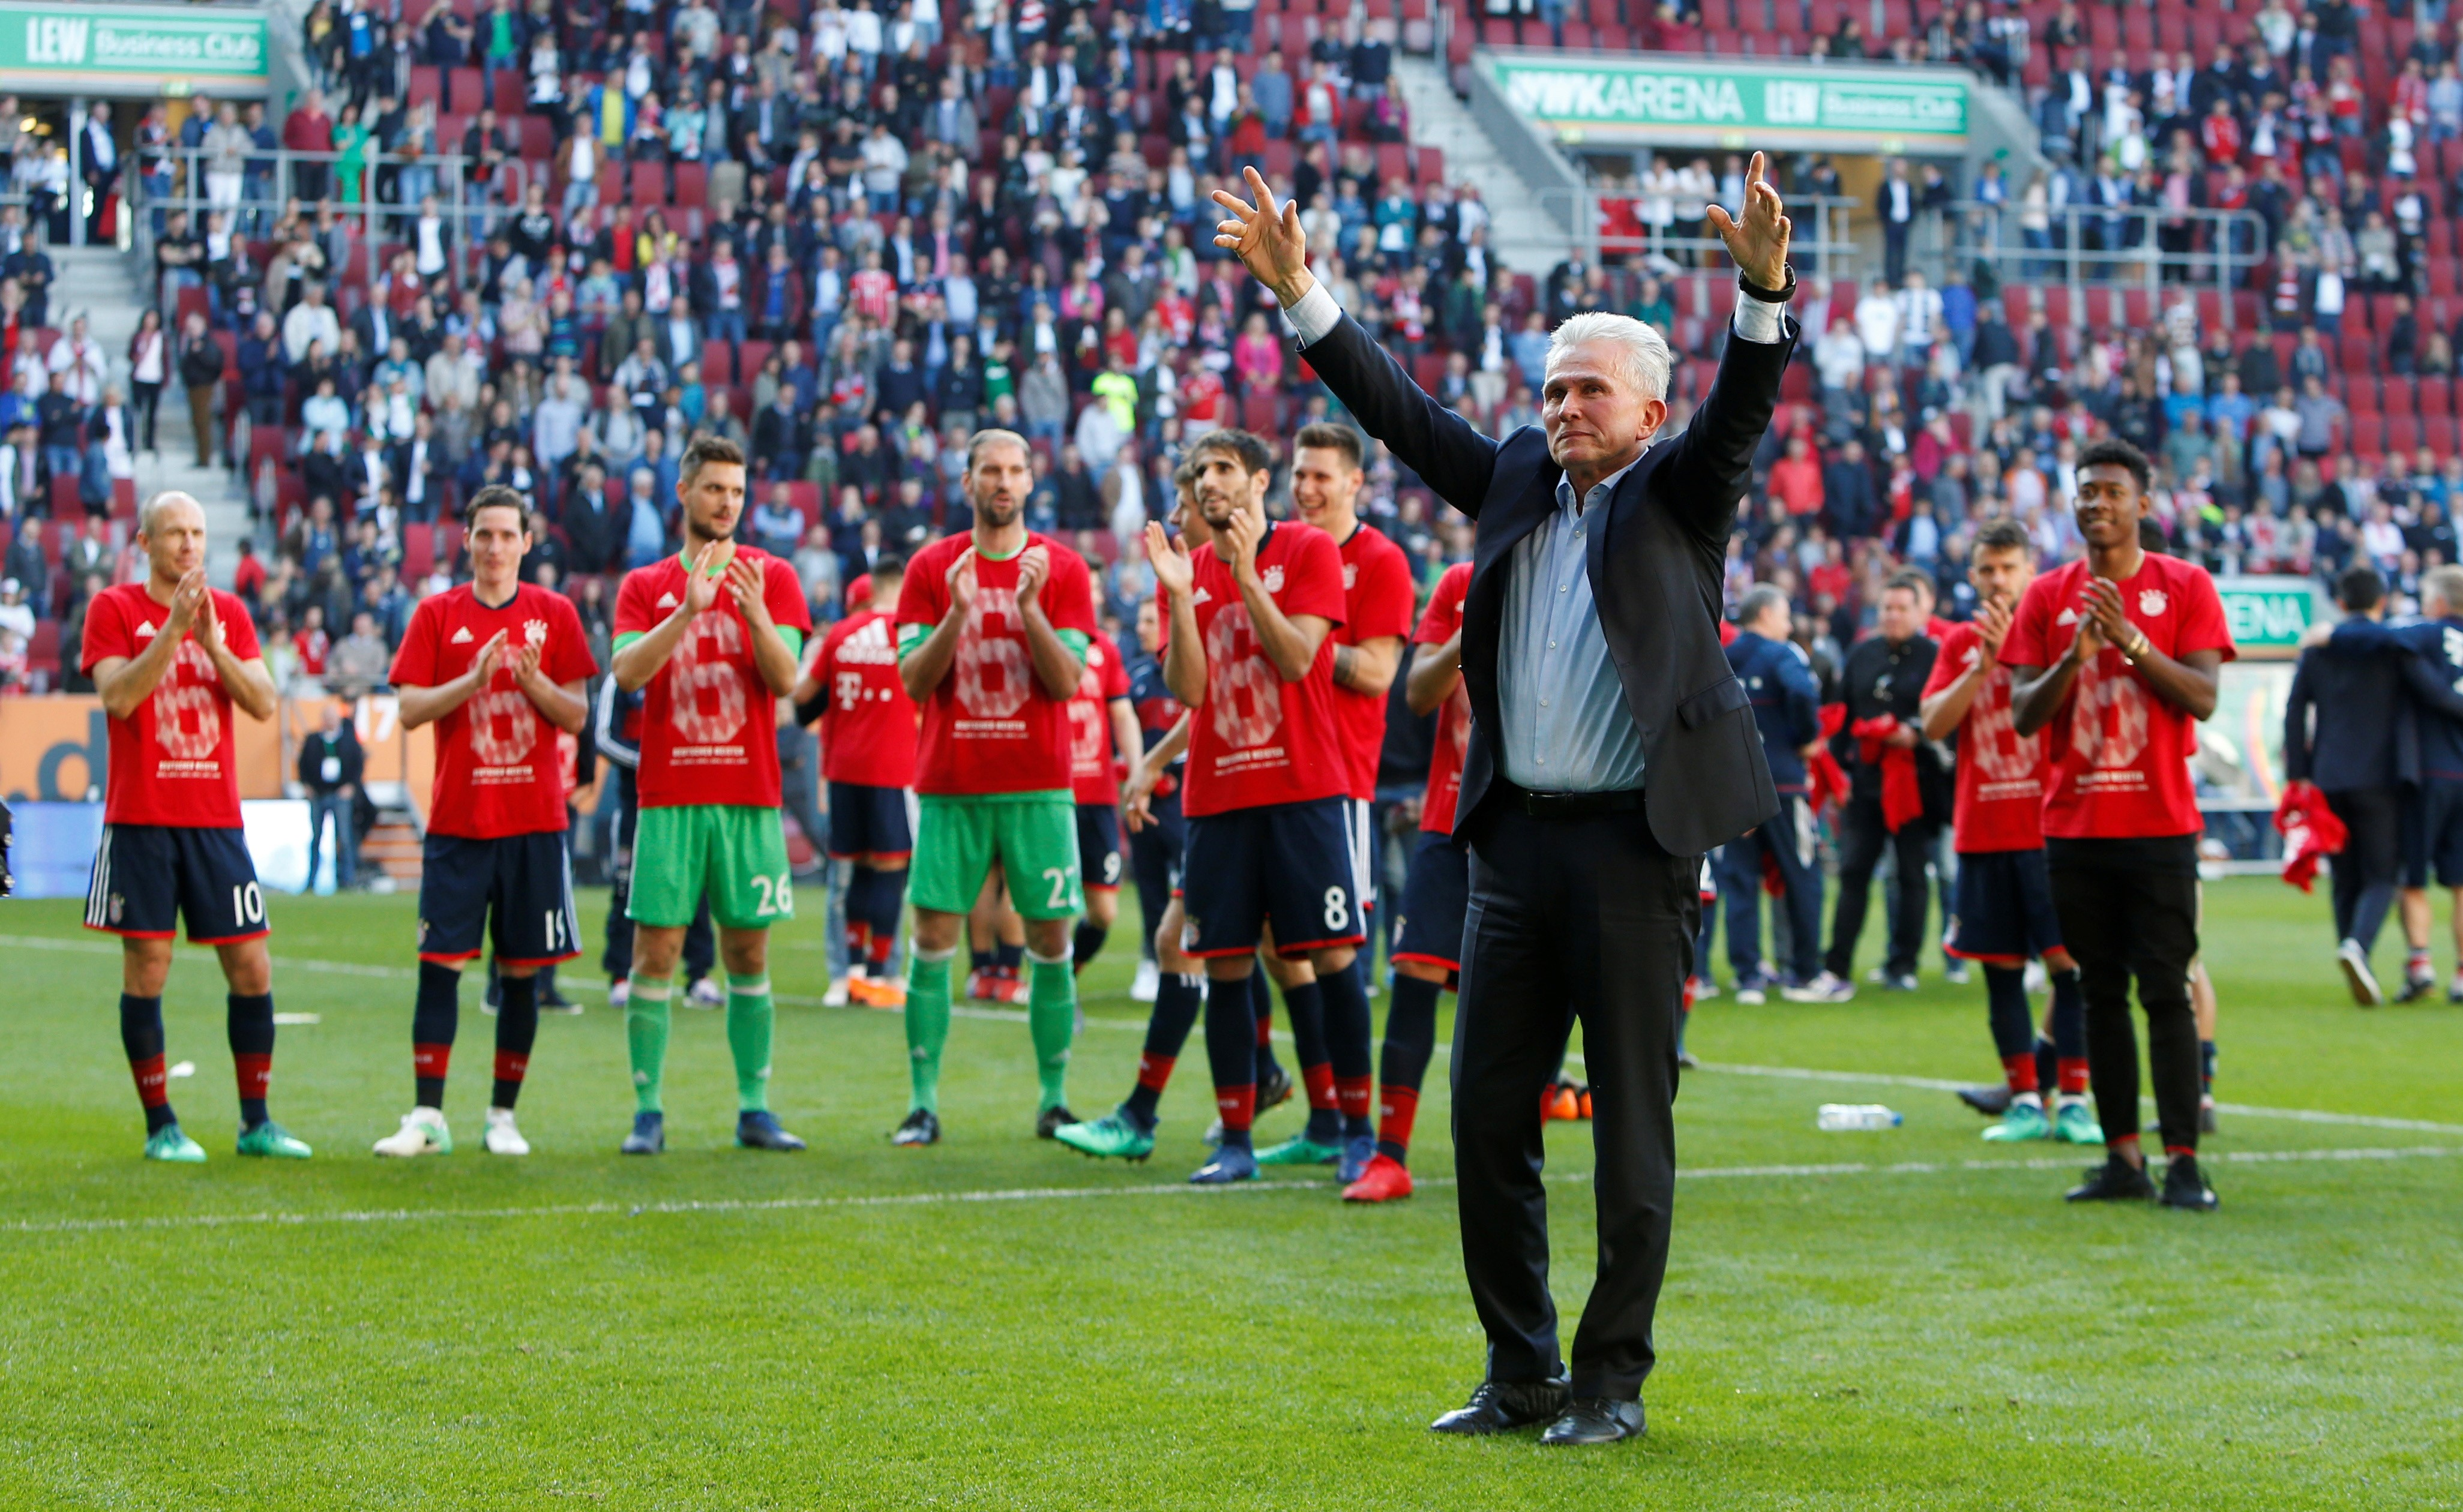 Bayern Munich coach Jupp Heynckes celebrates winning the league in front of the fans at the end of the match.